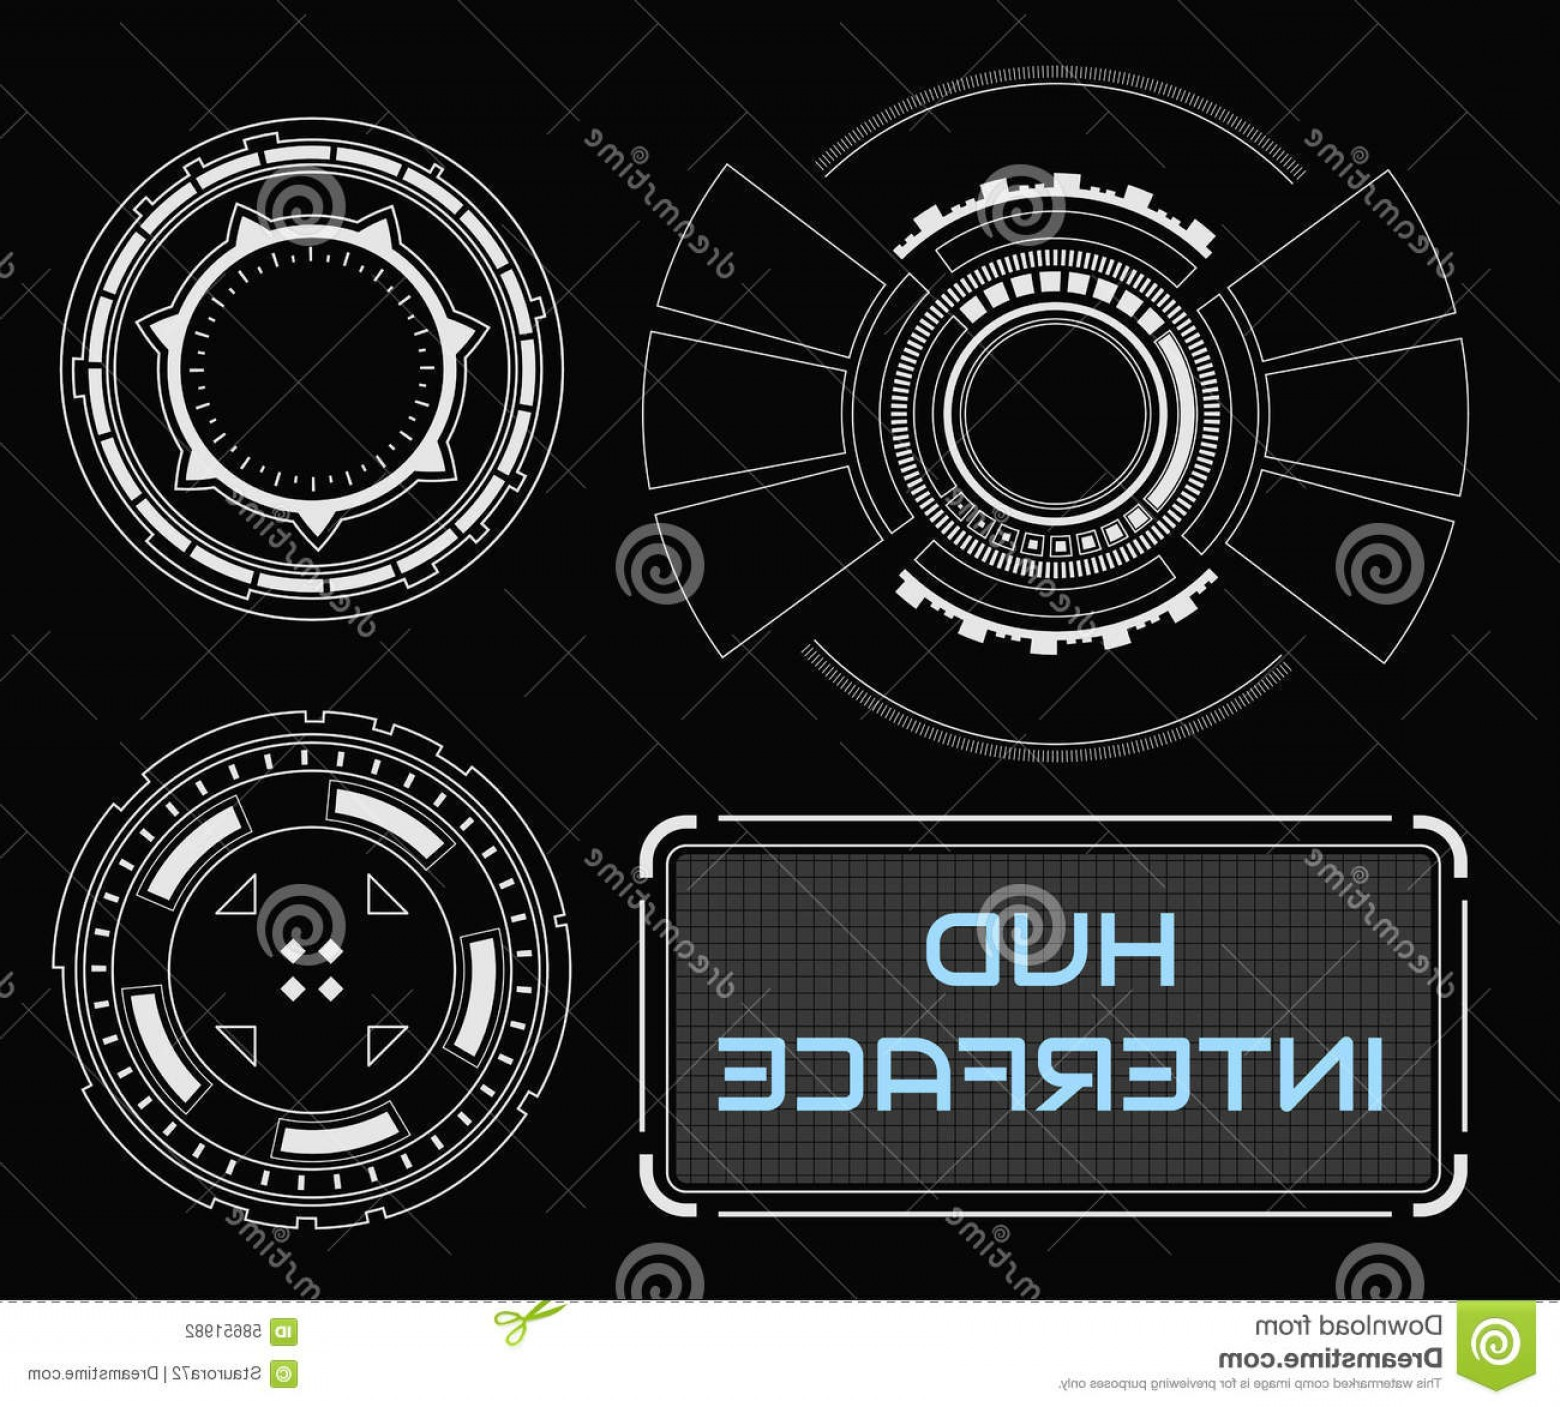 Futuristic Render Vector Graphics: Stock Illustration Concept Futuristic White Virtual Graphic Touch User Interface Abstract Future Vector Hud Hologram Image